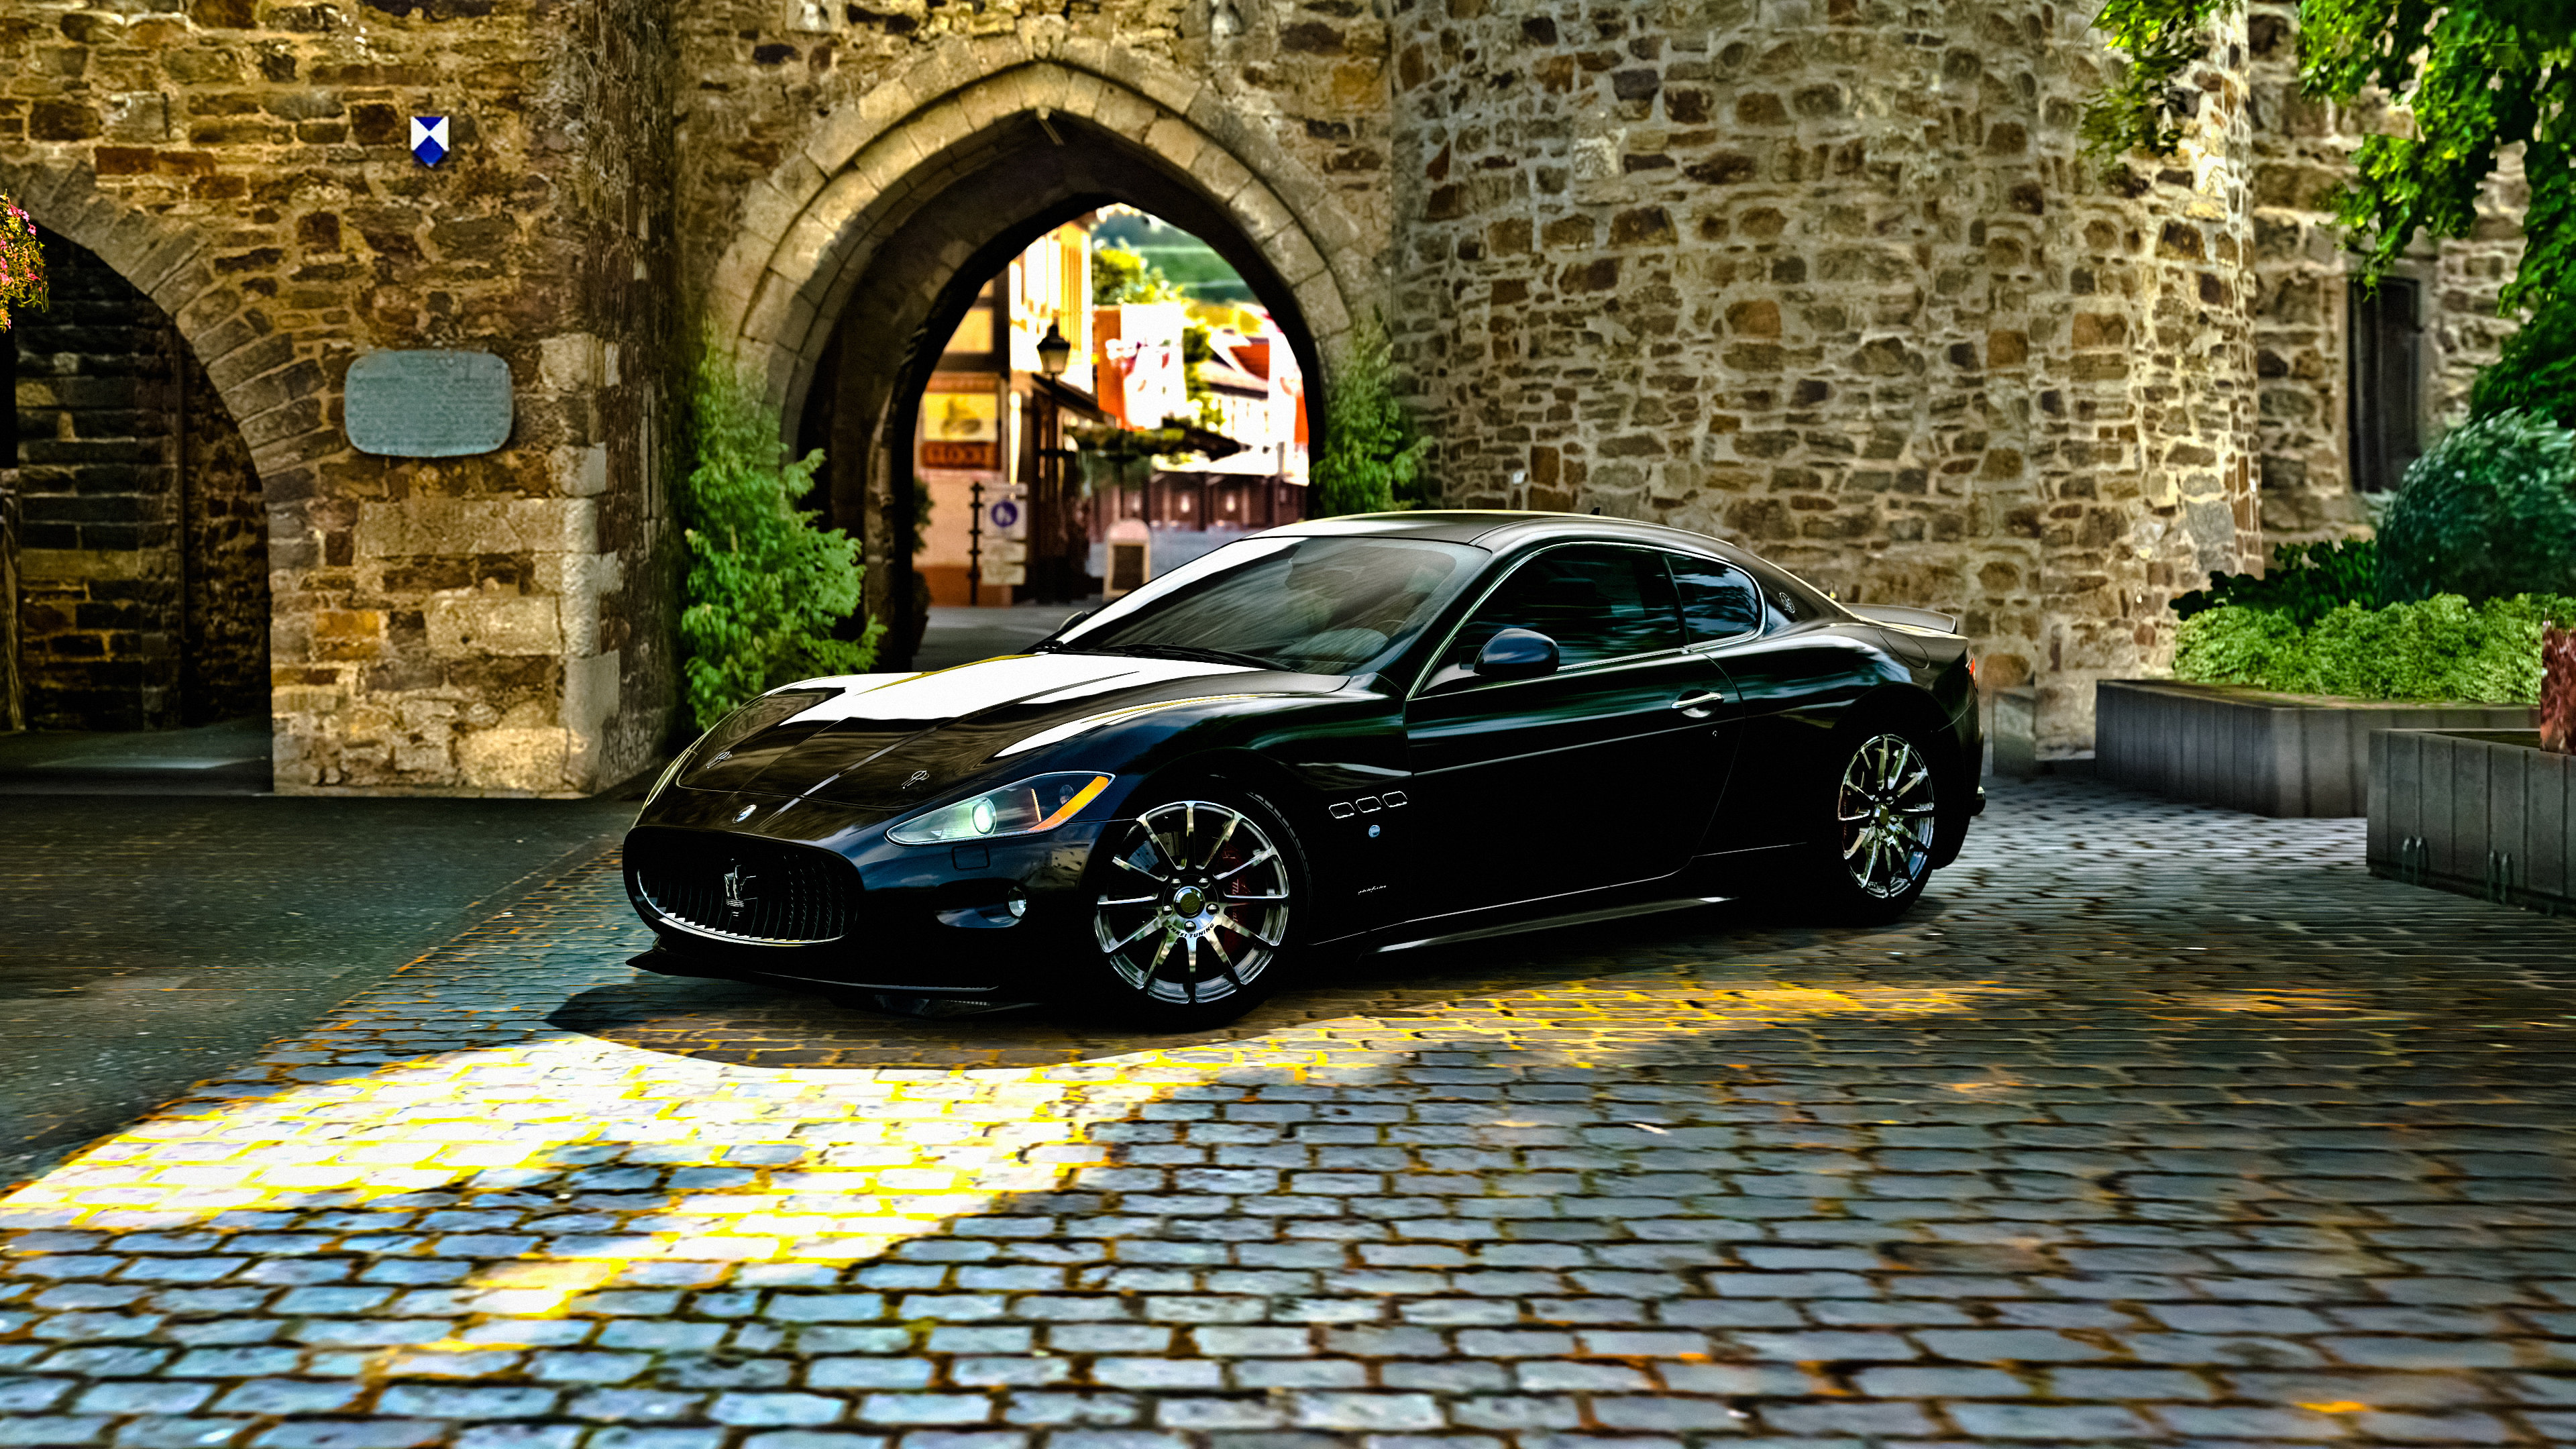 Download 4k Maserati PC wallpaper ID:399073 for free